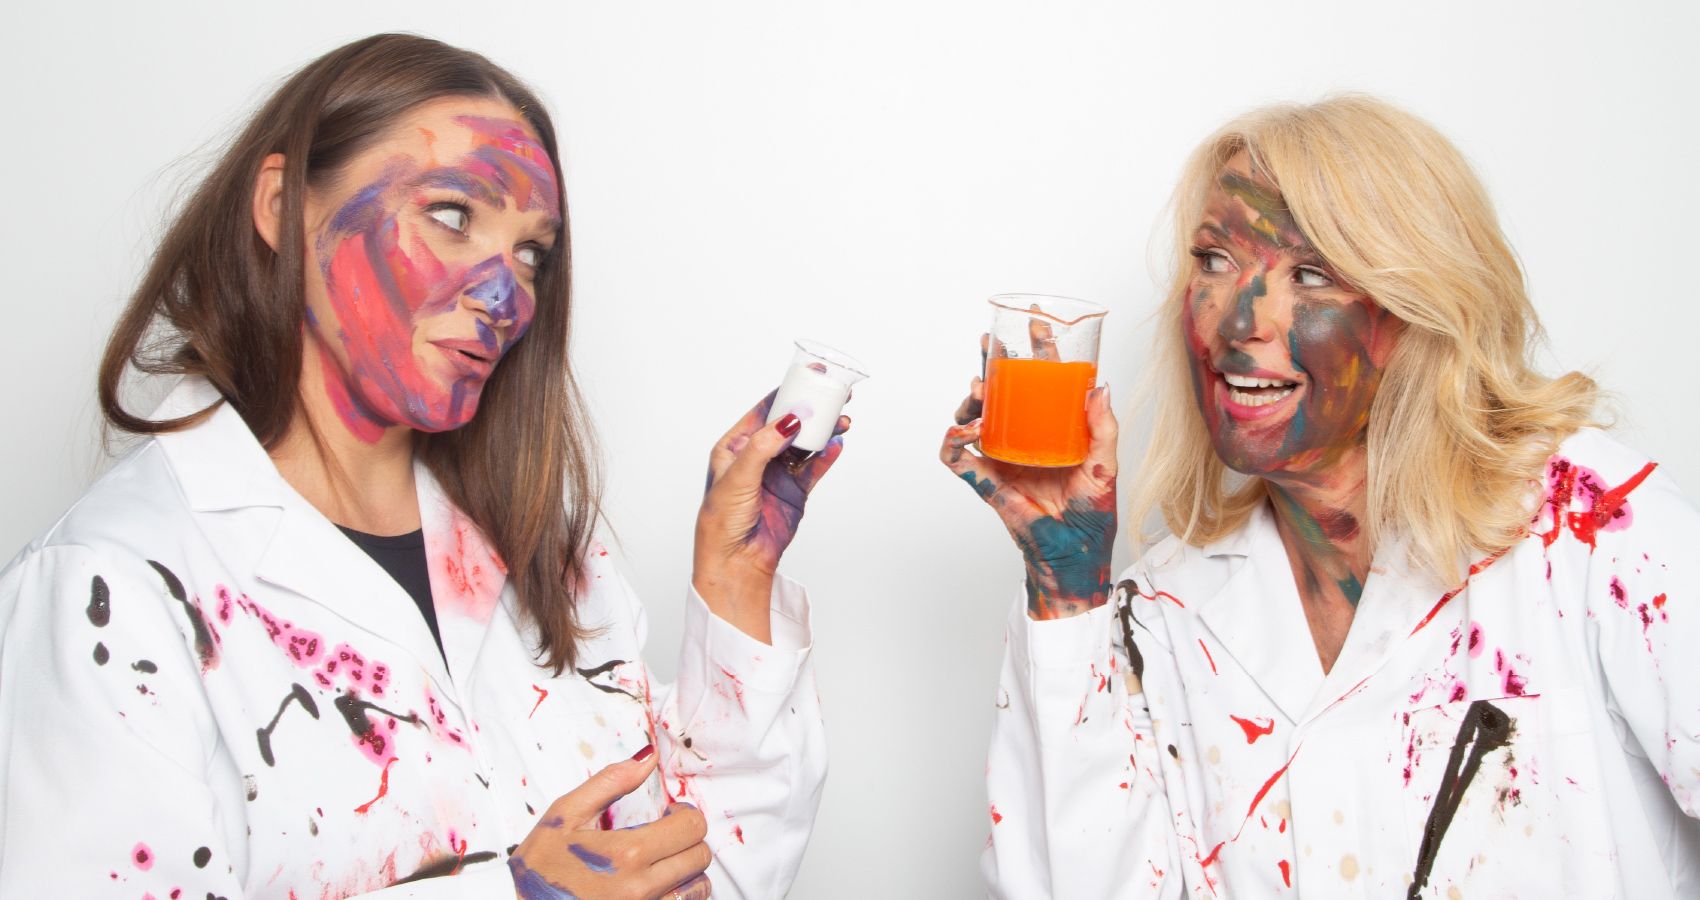 How much does it cost to do Pigment Mixology Training? Image